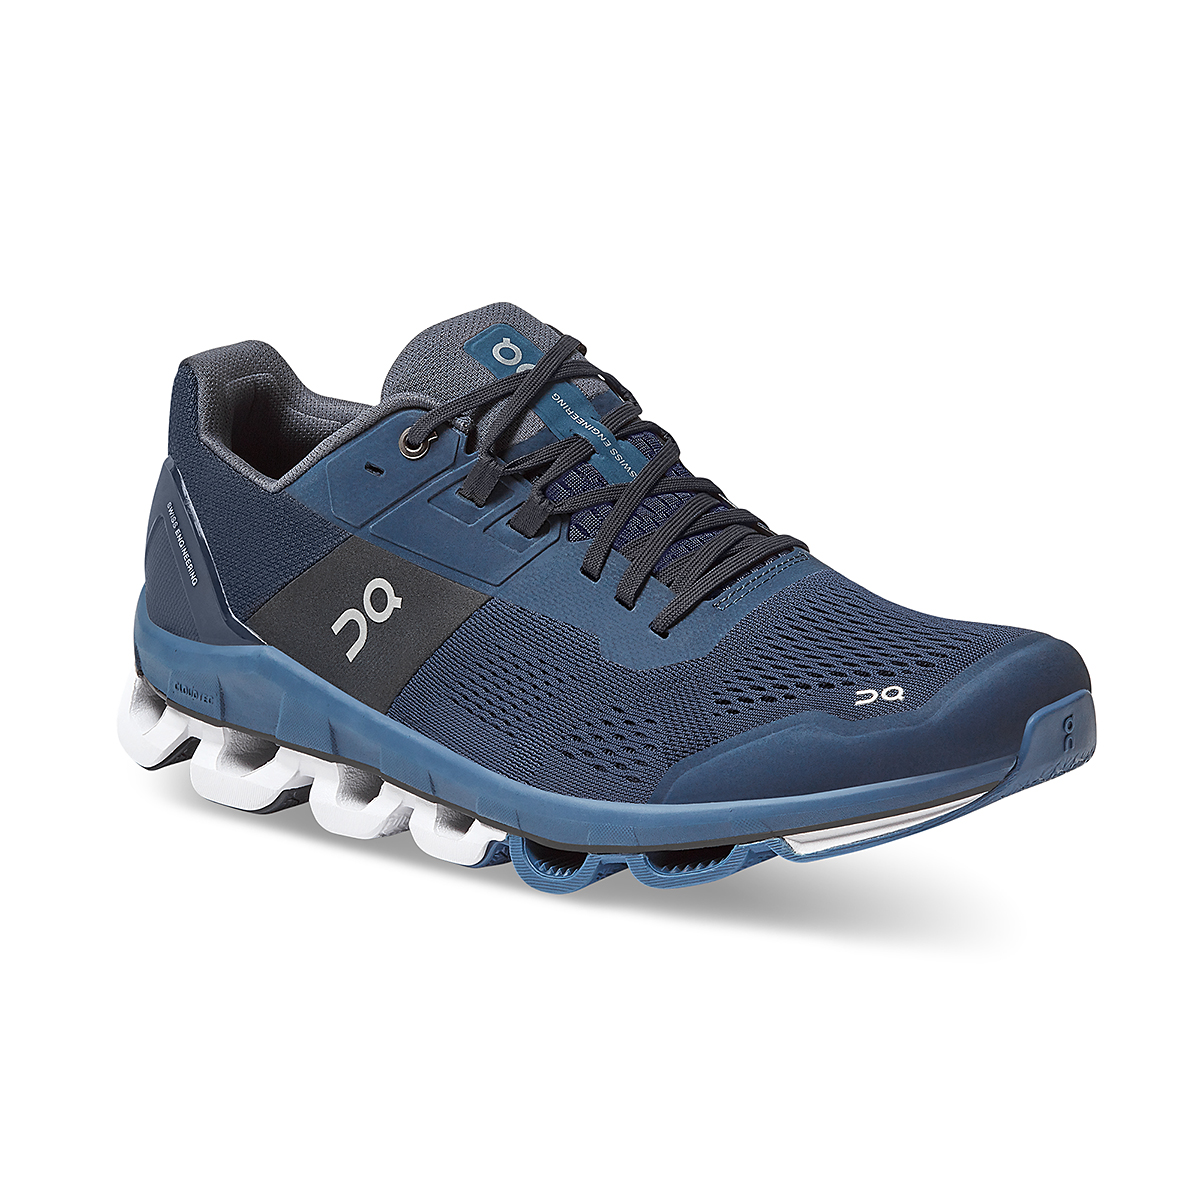 Men's On Cloudace Running Shoe - Color: Midnight   Navy - Size: 8 - Width: Regular, Midnight   Navy, large, image 3